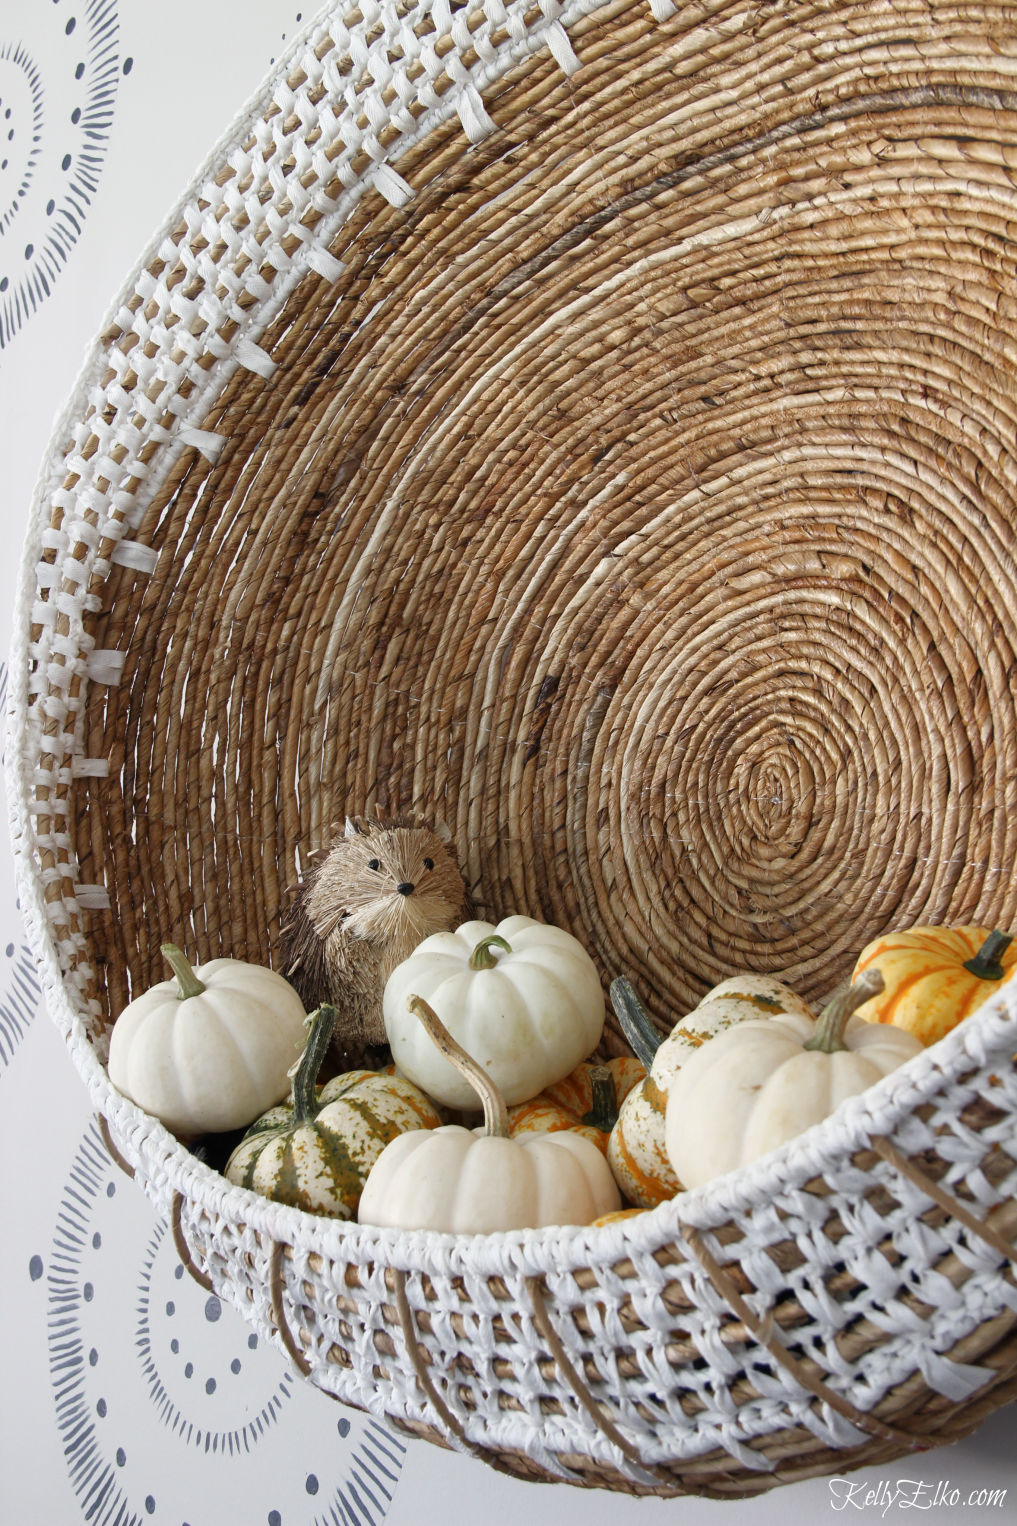 Love this huge wall basket with pouch for displaying pumpkins kellyelko.com #boho #bohodecor #baskets #wallart #pumpkins #falldecor #falldecorating